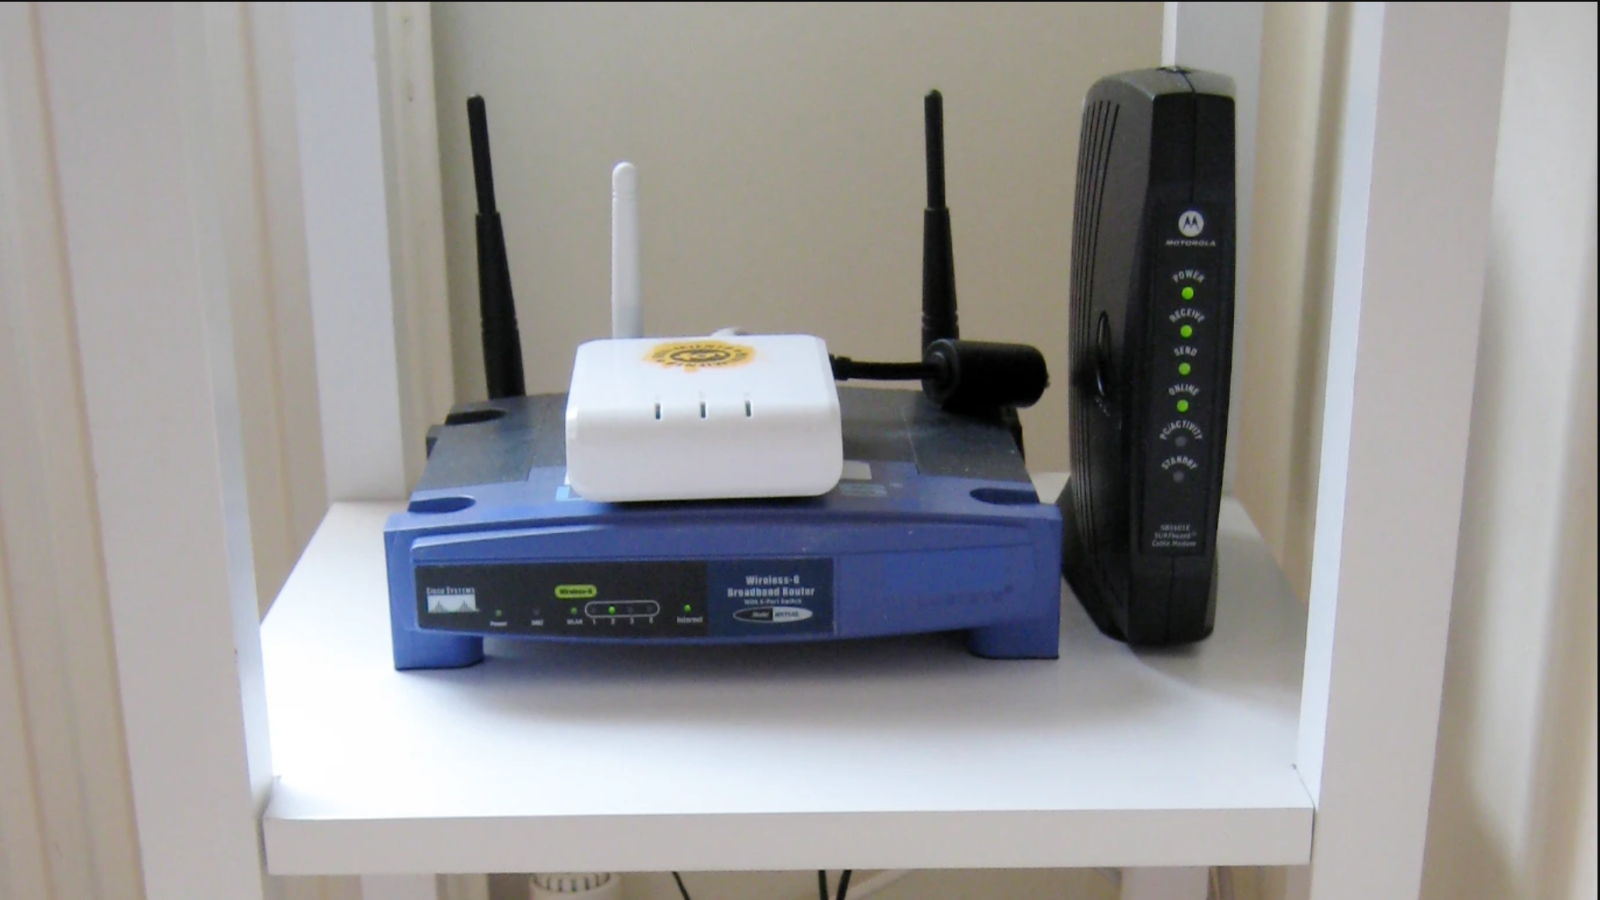 How To Extend Your Wifi Network With An Old Router Wireless Networking Wifi Network Router